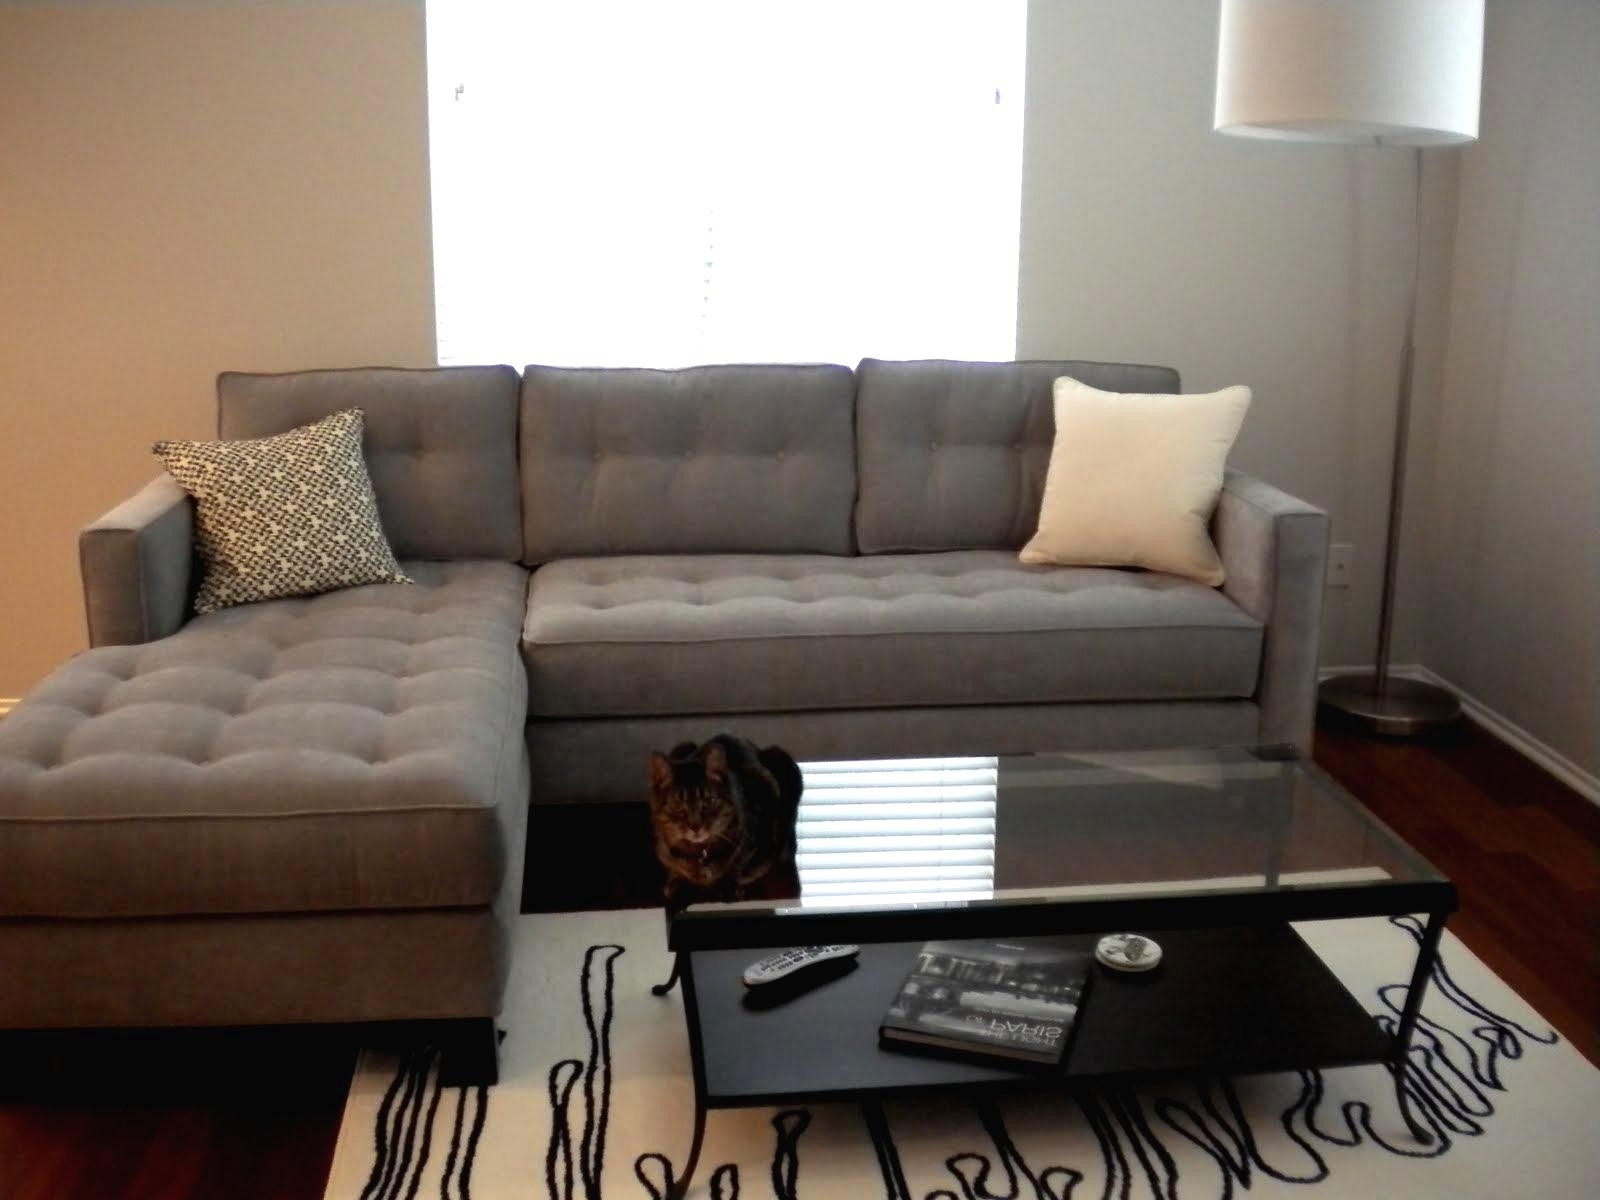 Famous Tufted Sectional Sofas With Chaise In Sofa: Tufted Sectional Sofa With Chaise (View 4 of 20)